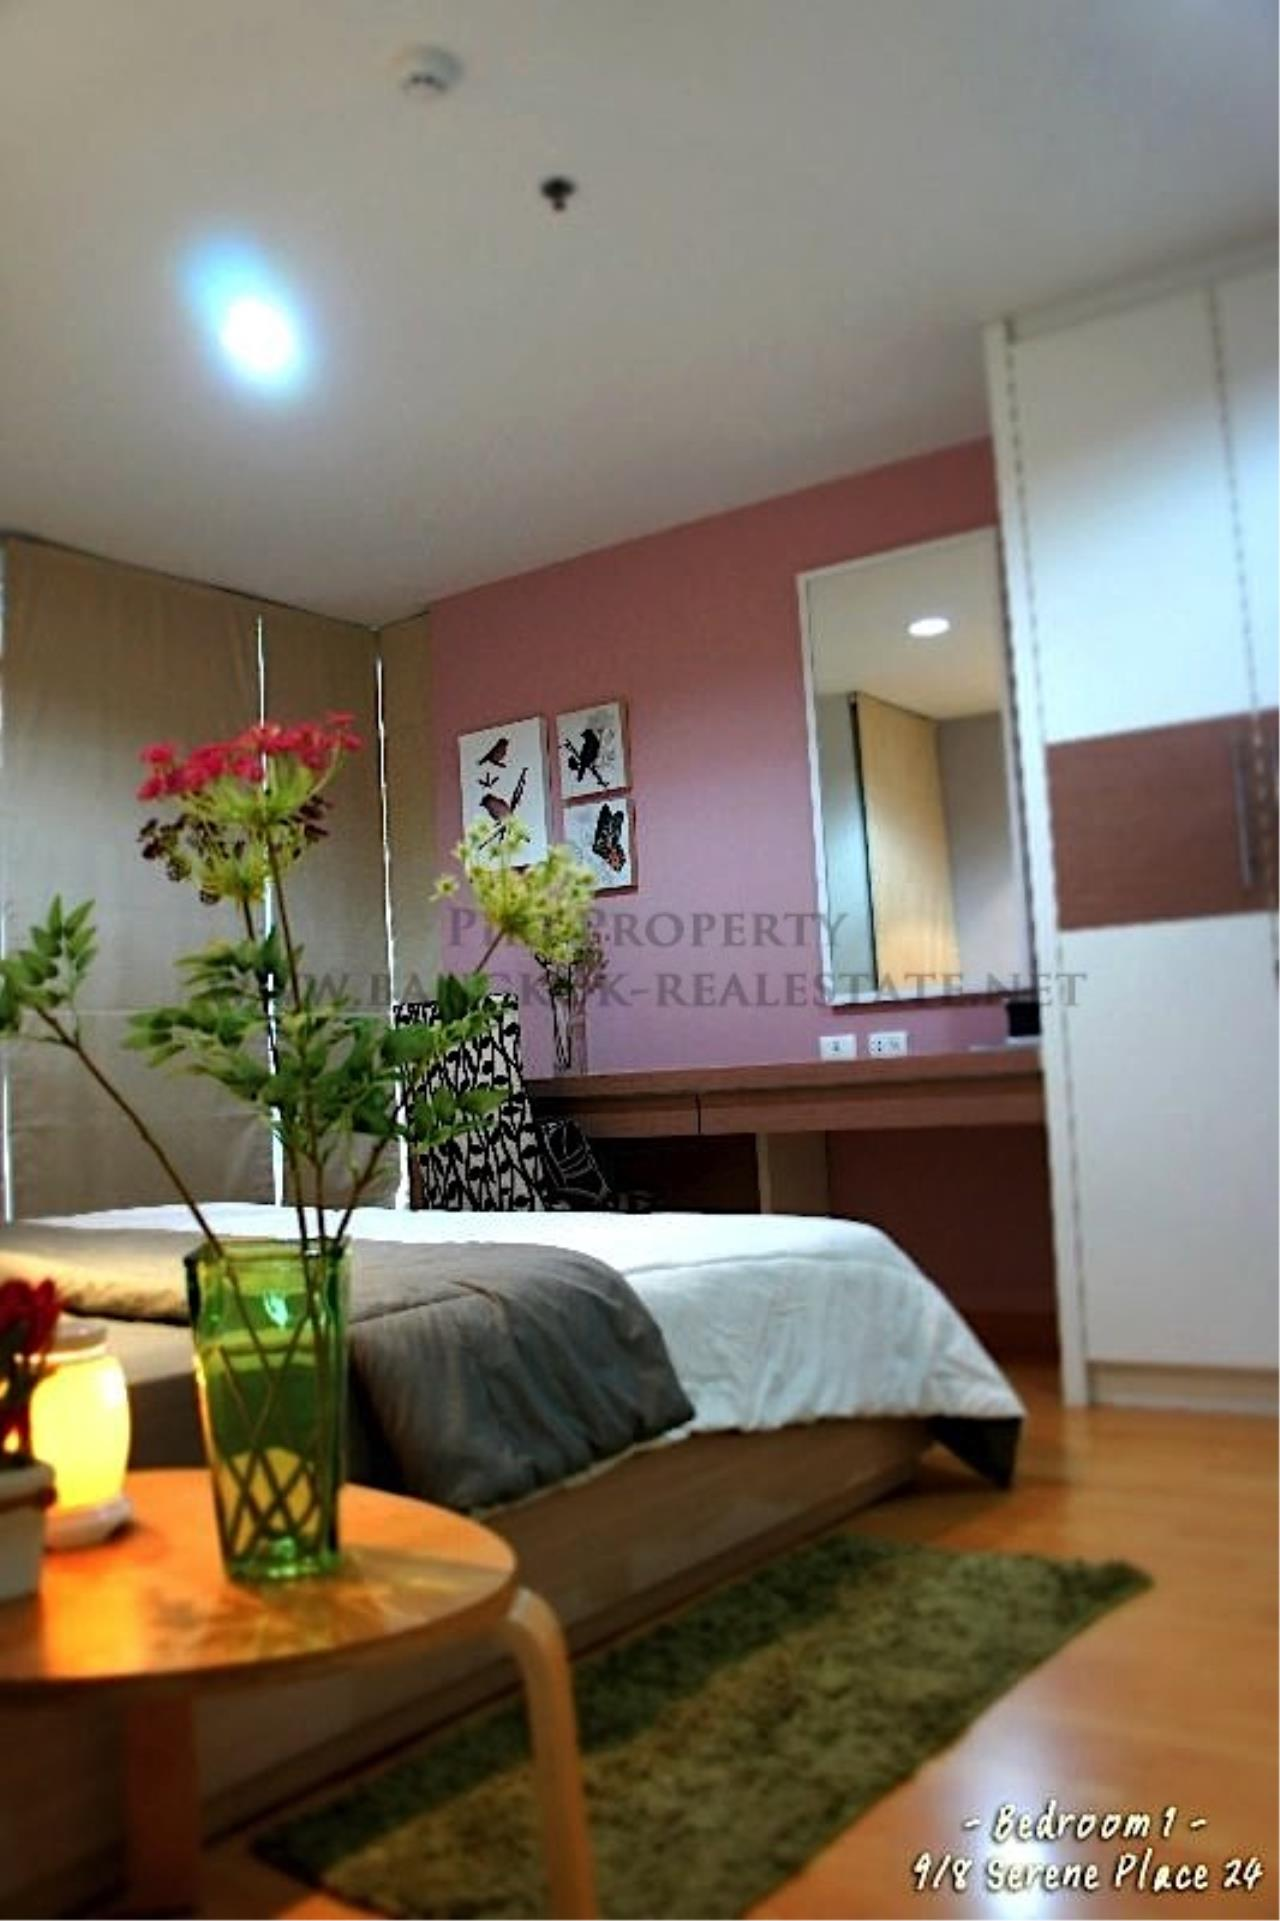 Piri Property Agency's Serene Place - Newly renovated 2 Bedroom Unit 4